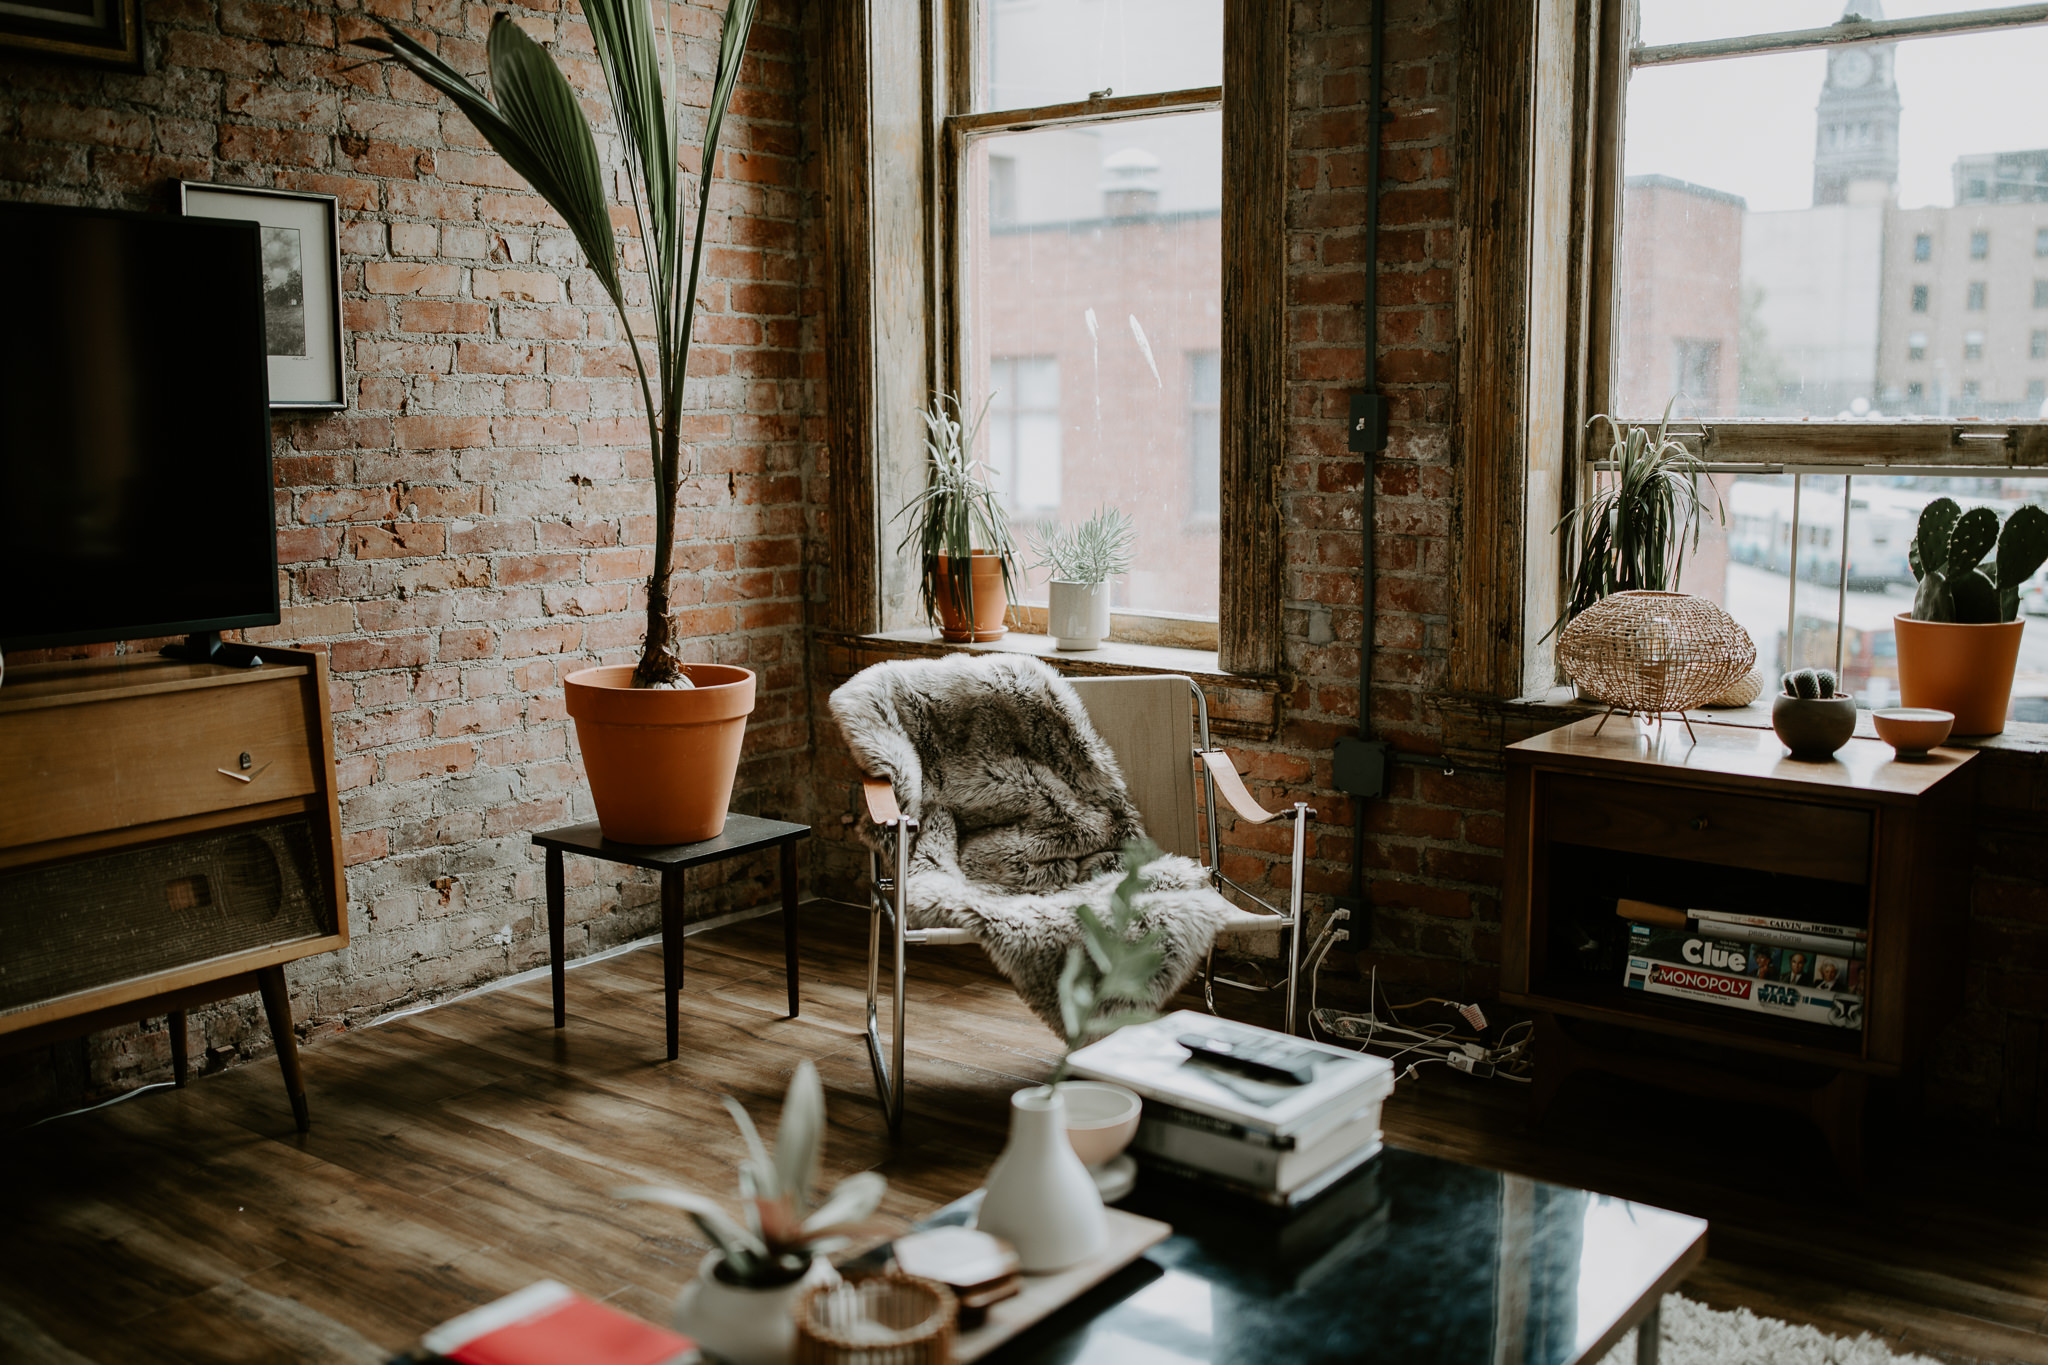 Cozy Apartment in Downtown Seattle, Washington by Travel Photographer, Allie Chambers